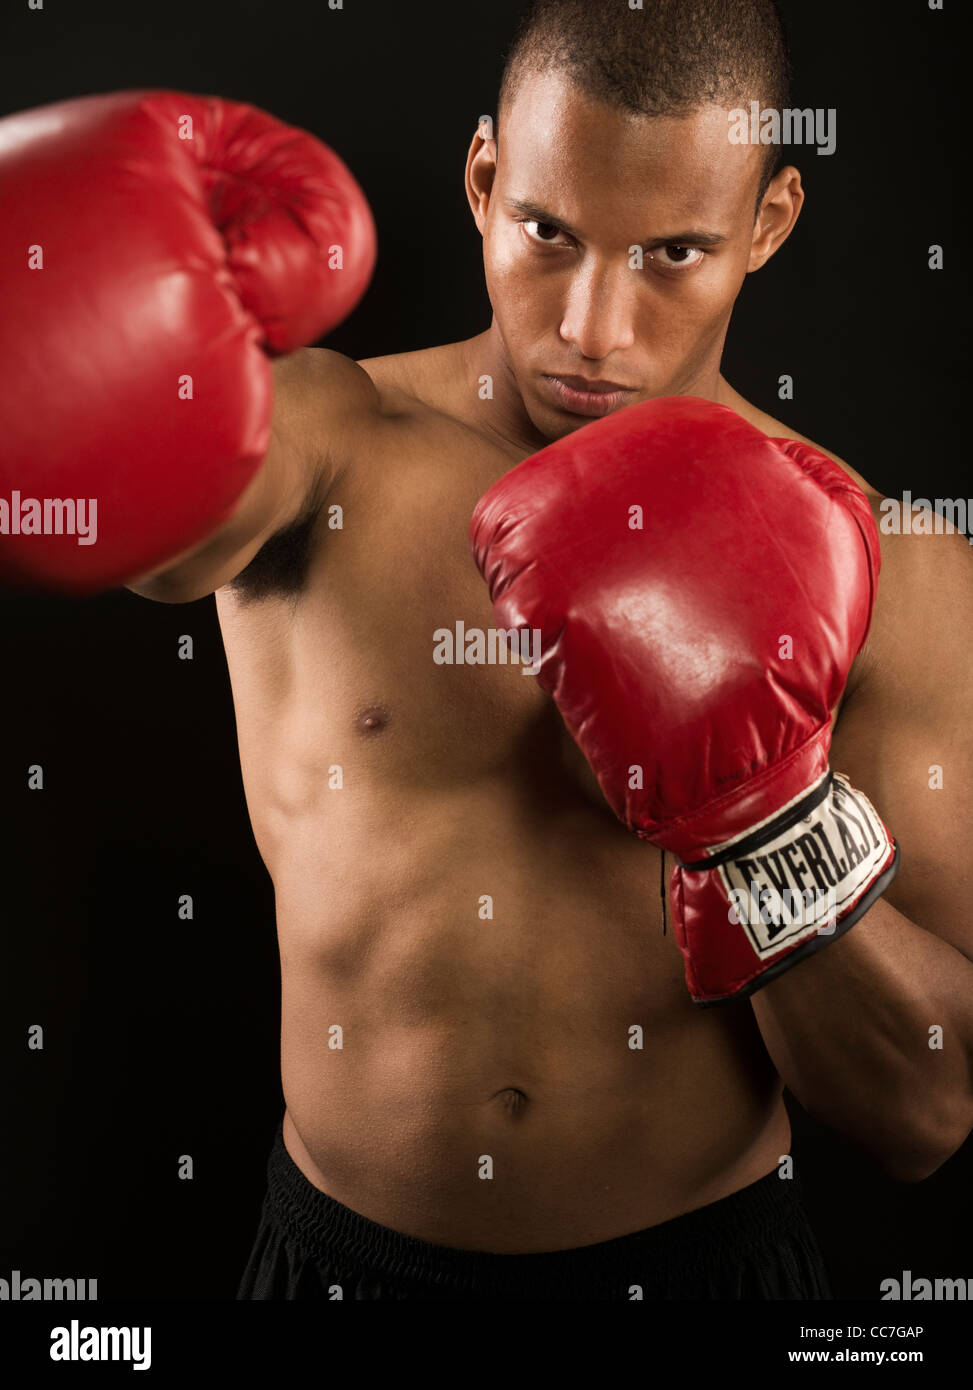 Boxer with red Everlast boxing gloves - Stock Image